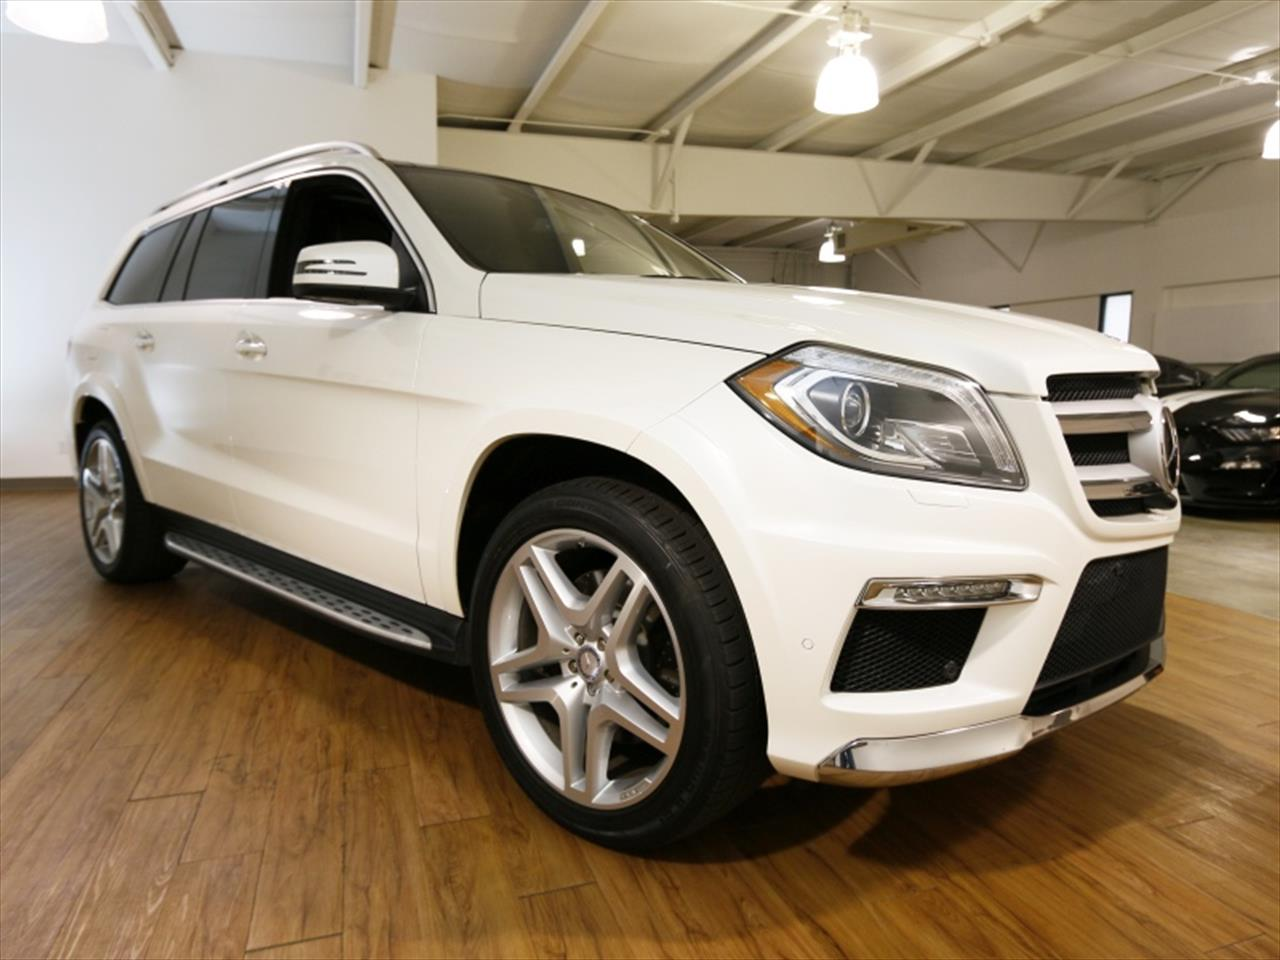 Mercedes benz gl 550 mercedes benz gl550 2010 picture for Used mercedes benz gl550